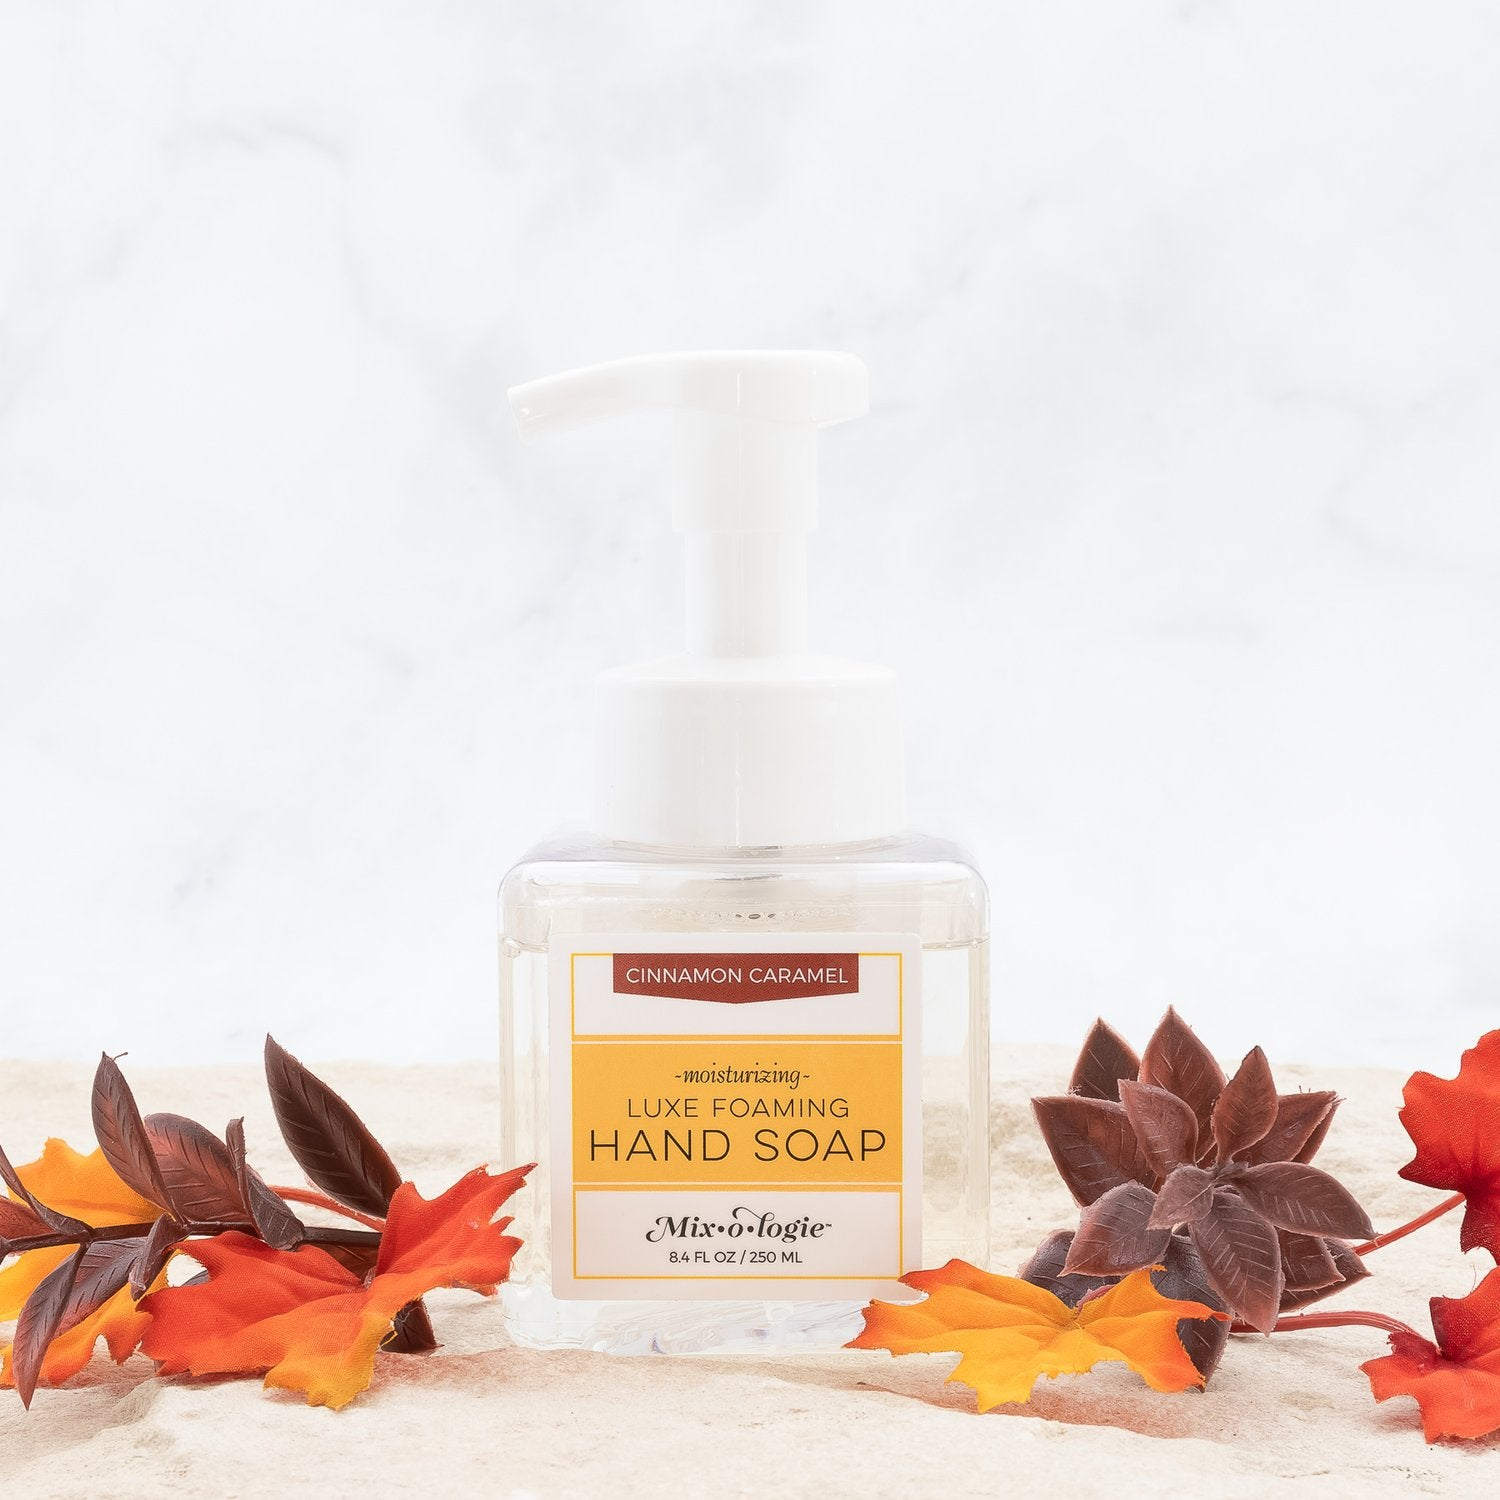 Cinnamon Caramel Luxe Foaming Hand Soap